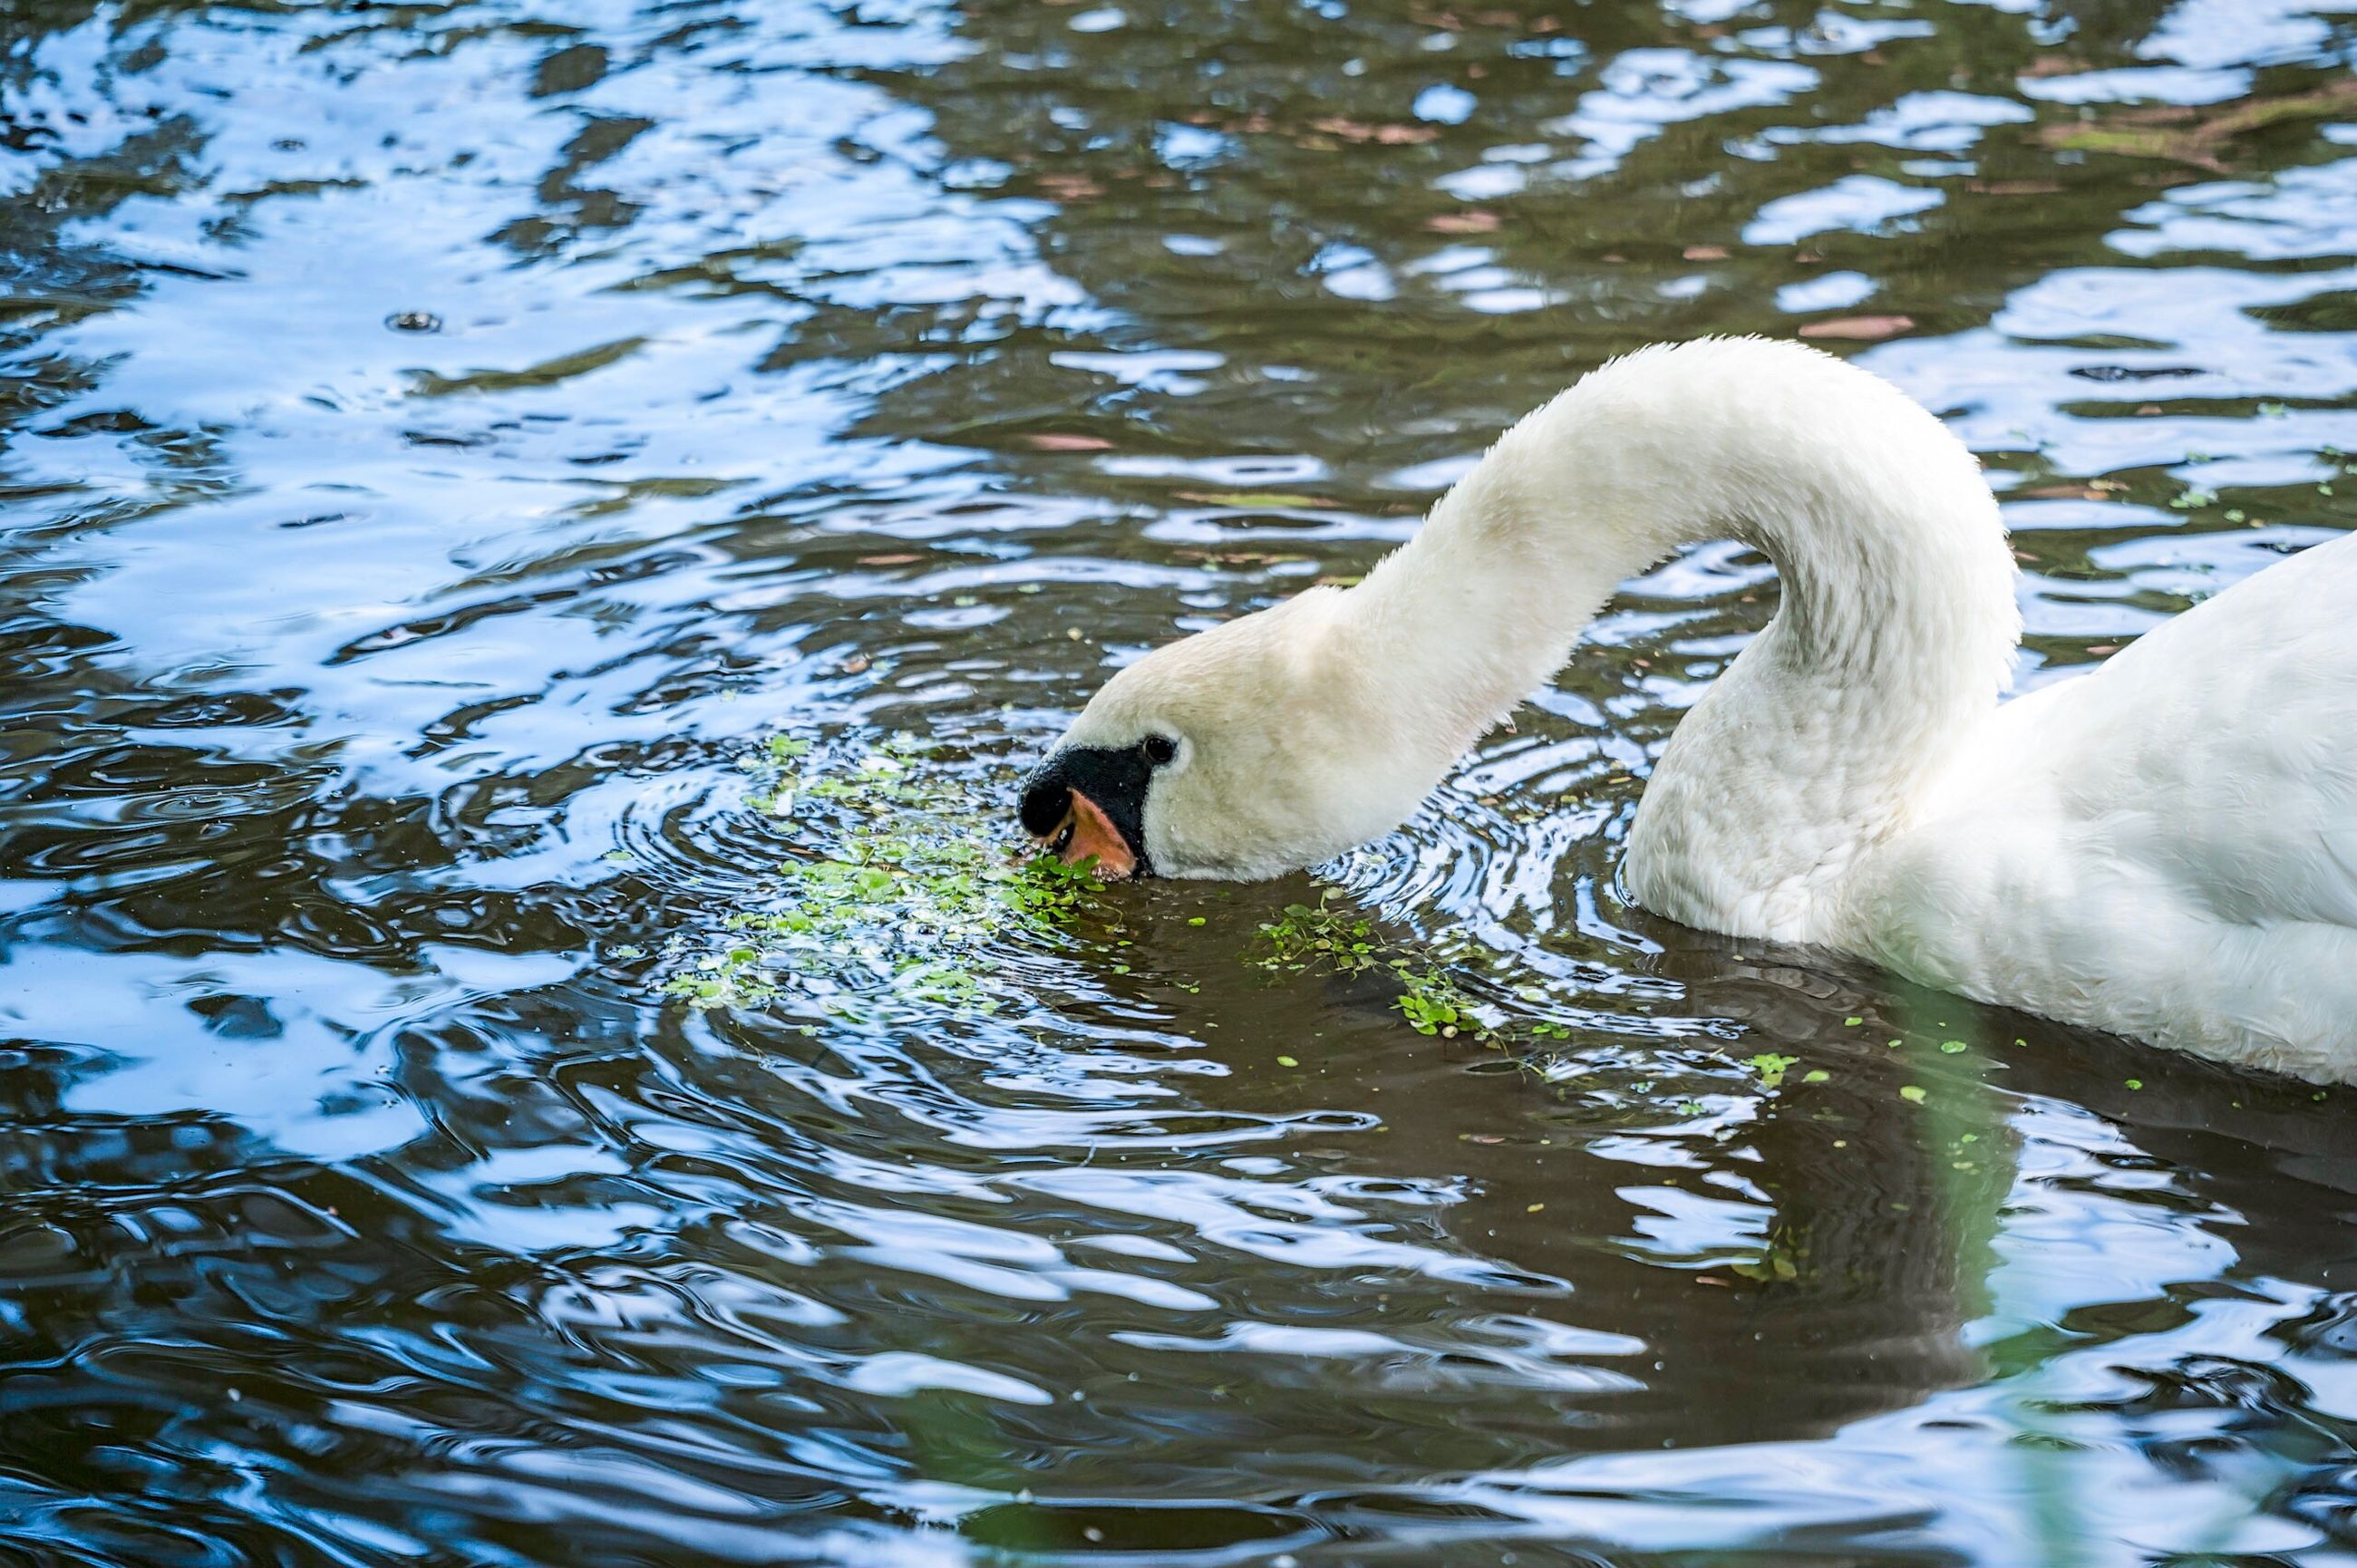 animal themes, swimming, bird, one animal, animals in the wild, water, lake, water bird, beak, swan, day, floating on water, outdoors, no people, close-up, nature